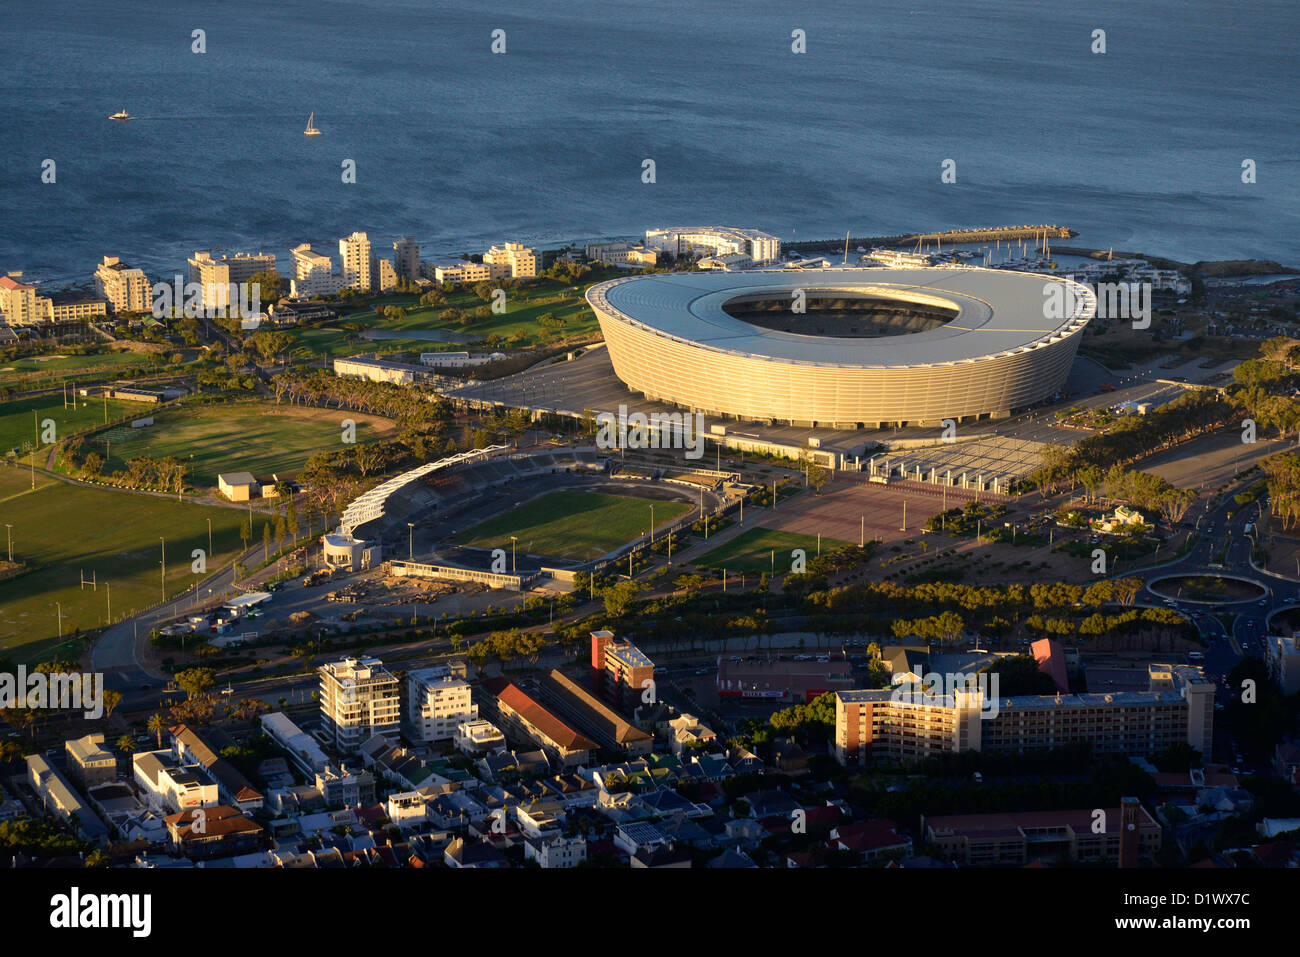 Aerial view of Greenpoint World Cup soccer stadium taken from Signal Hill. - Stock Image